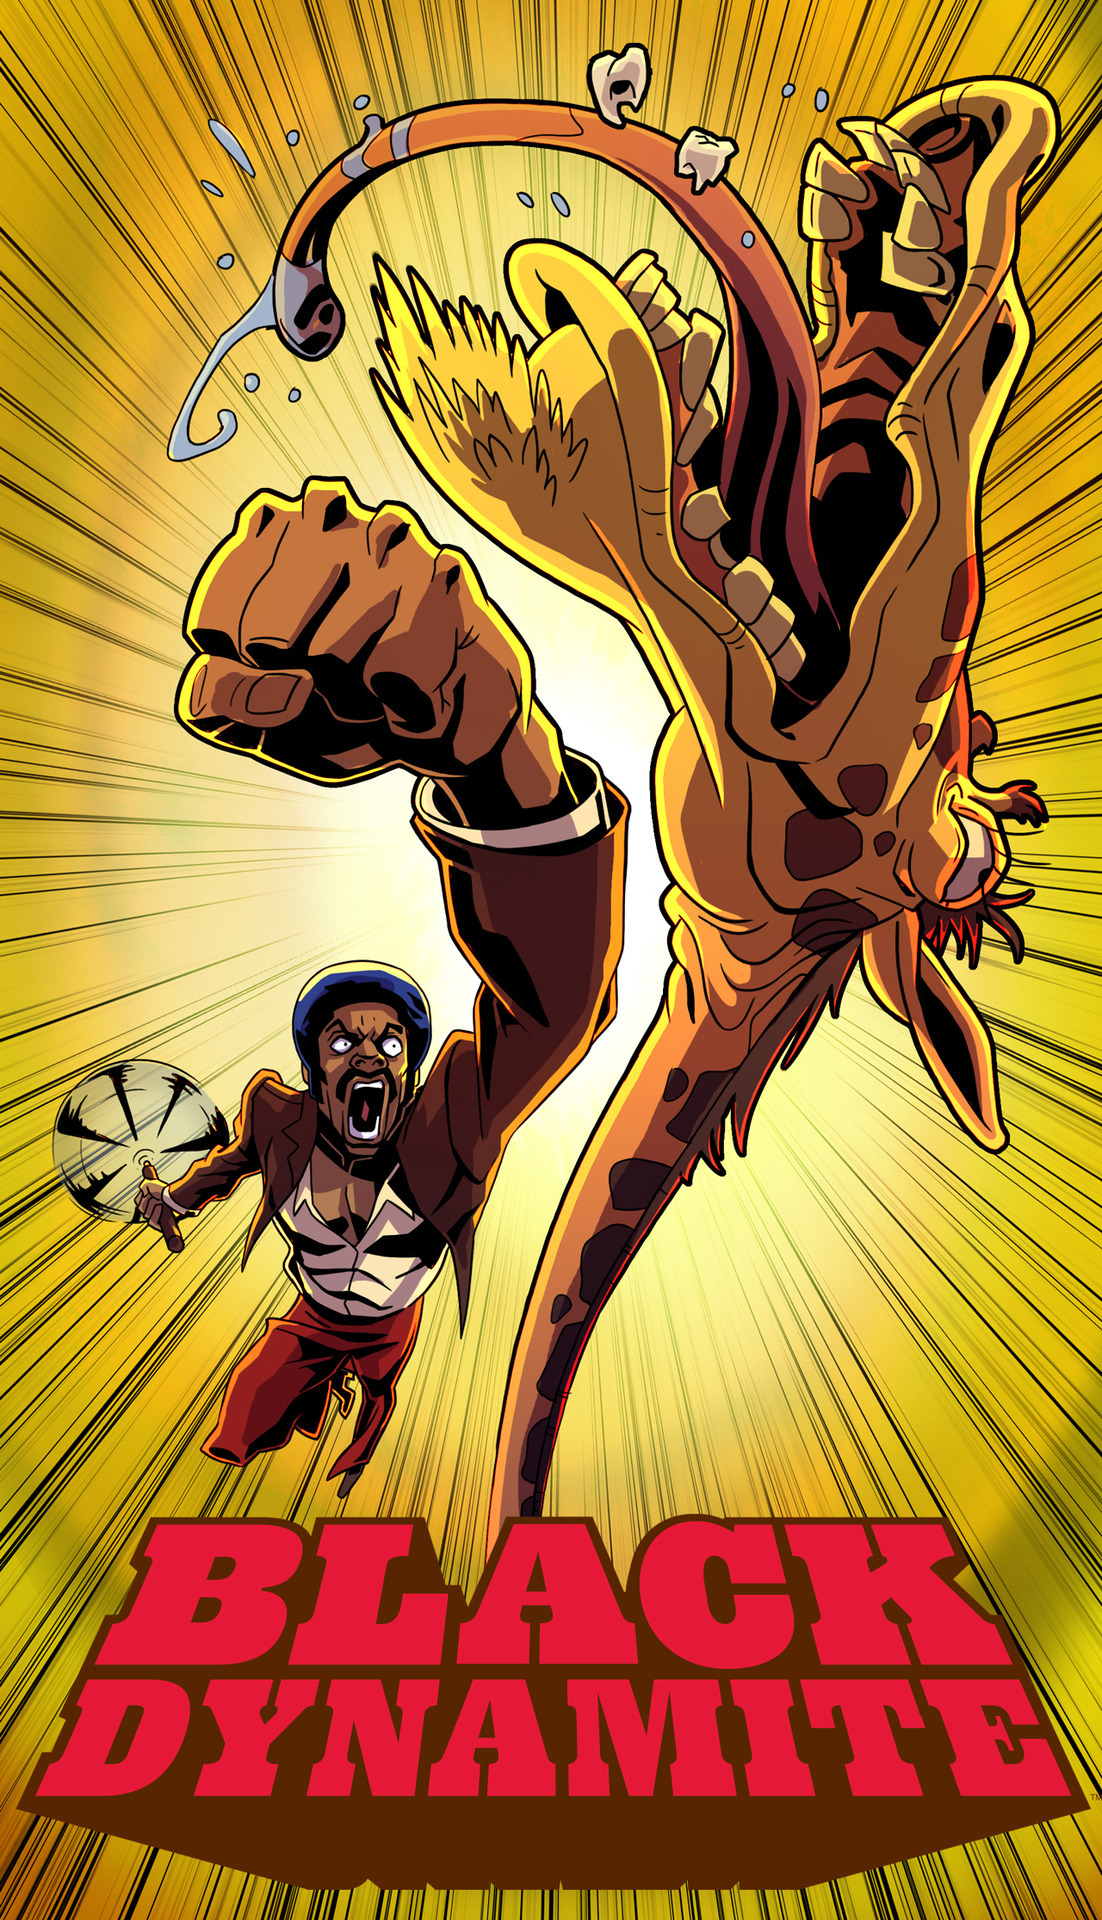 Rise and shine jive turkey! Black Dynamite premieres in 4 days.